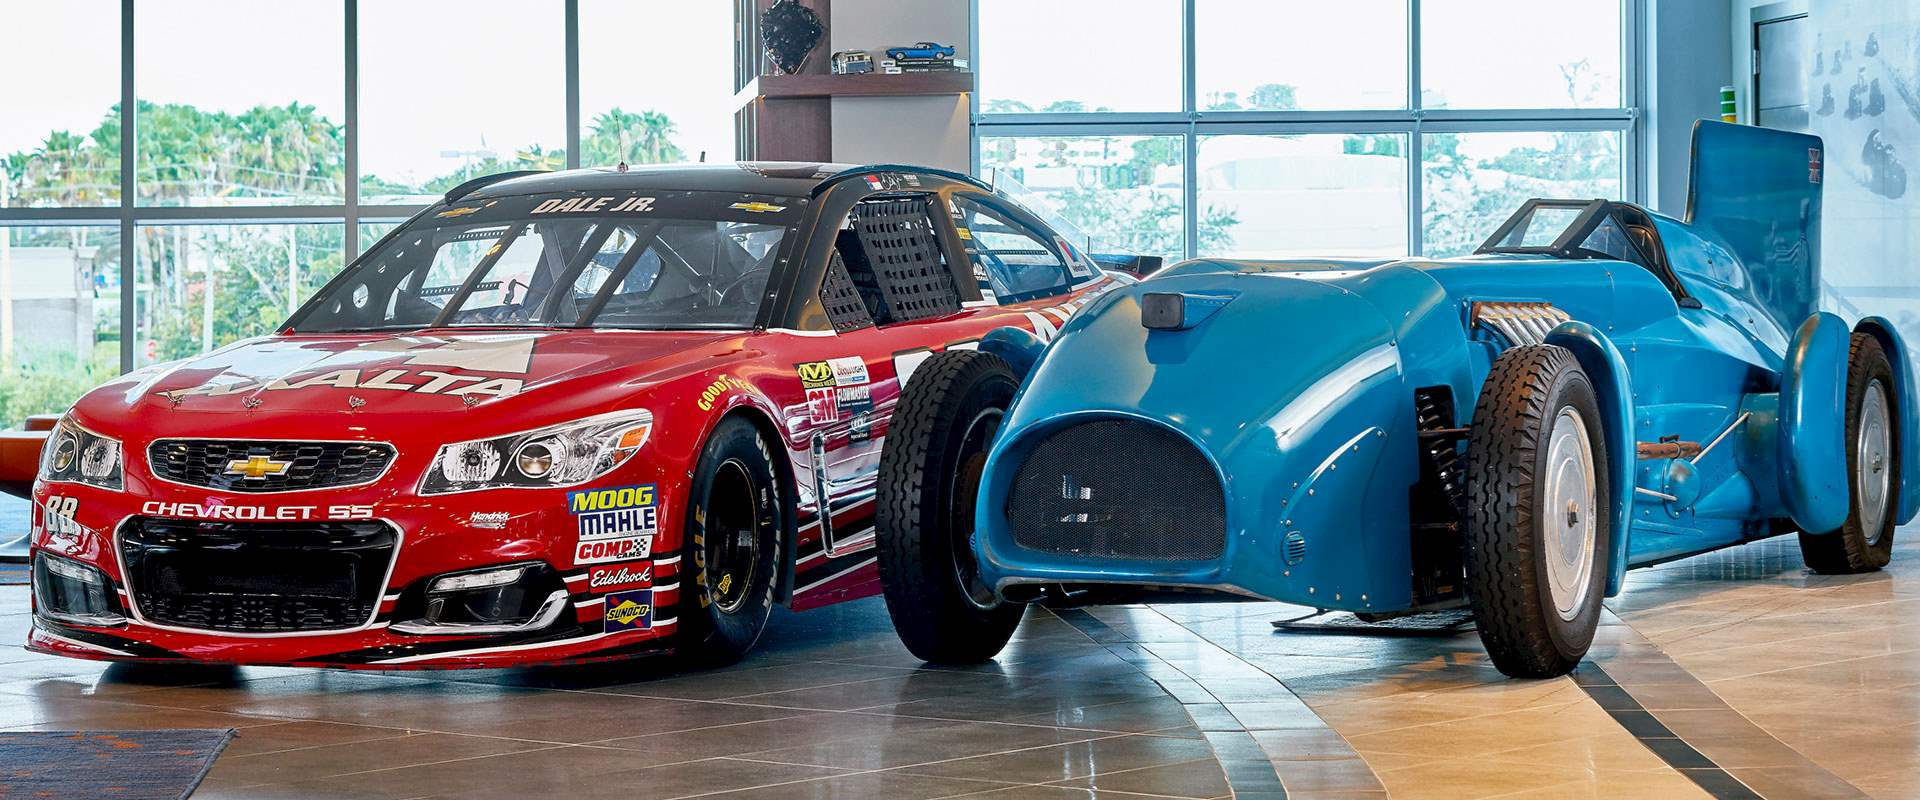 The Grid at Daytona Autograph Collection Hotel